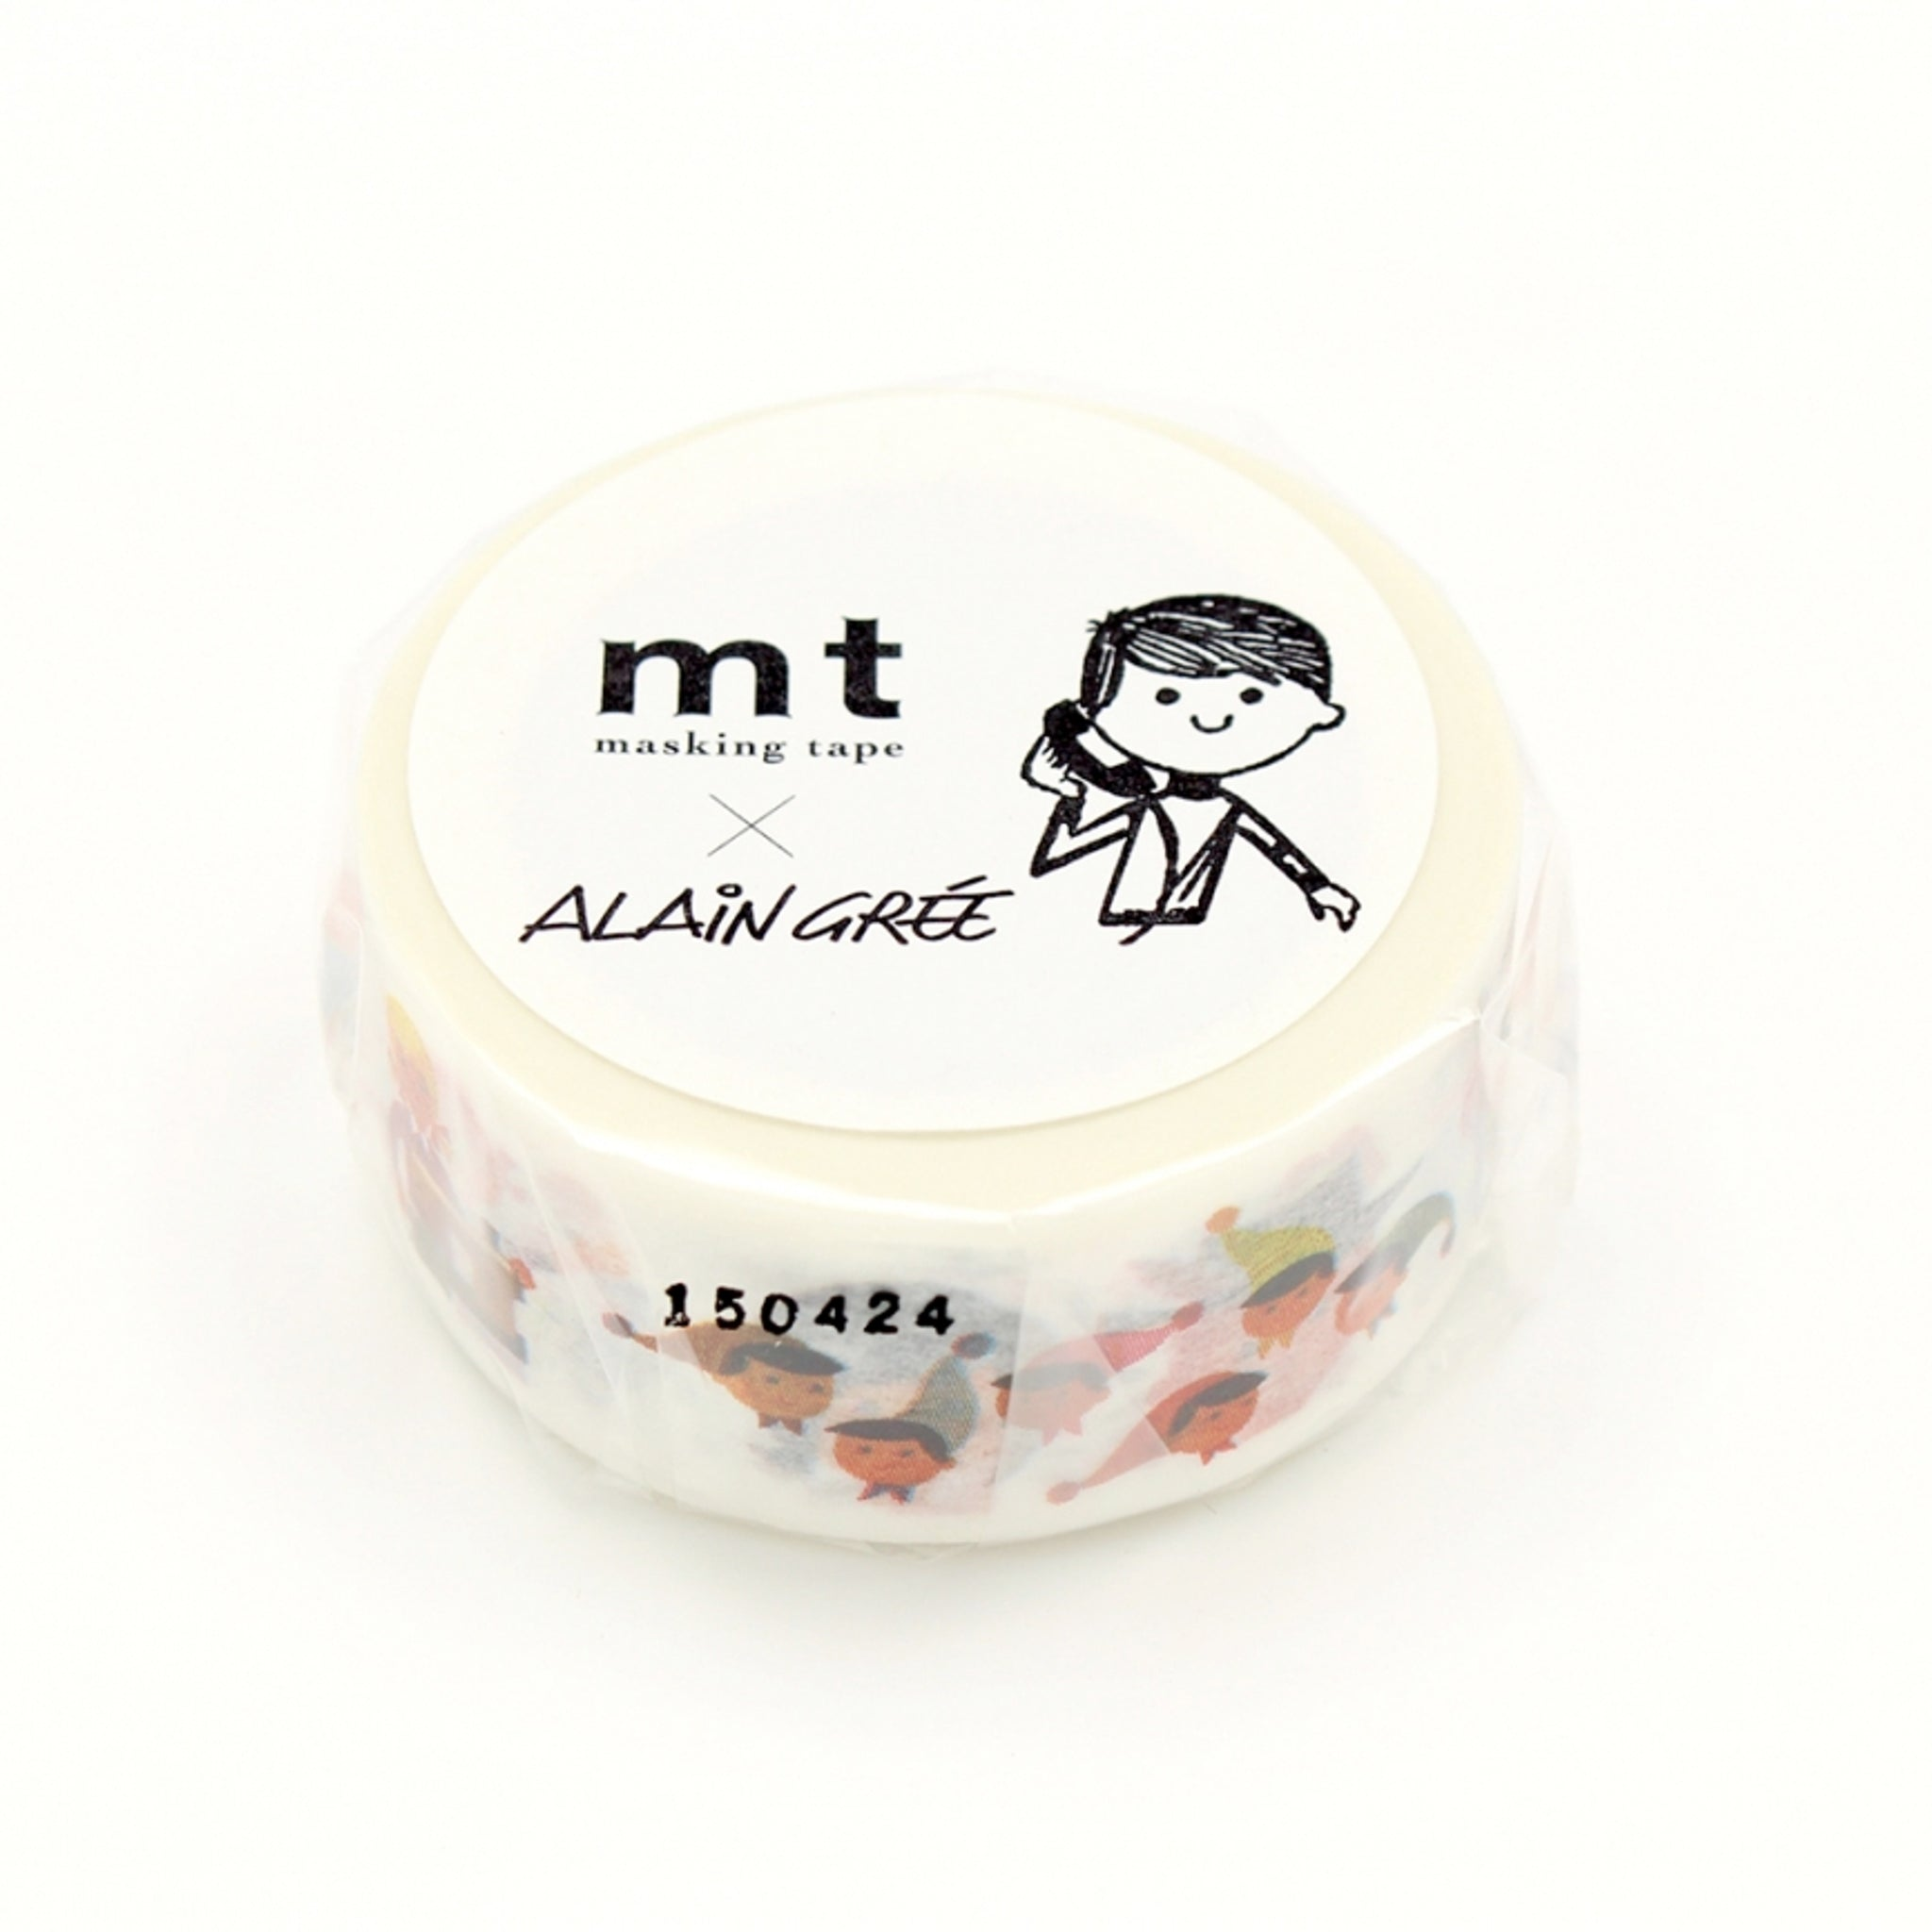 MT x Alain Gree Washi Tape Person